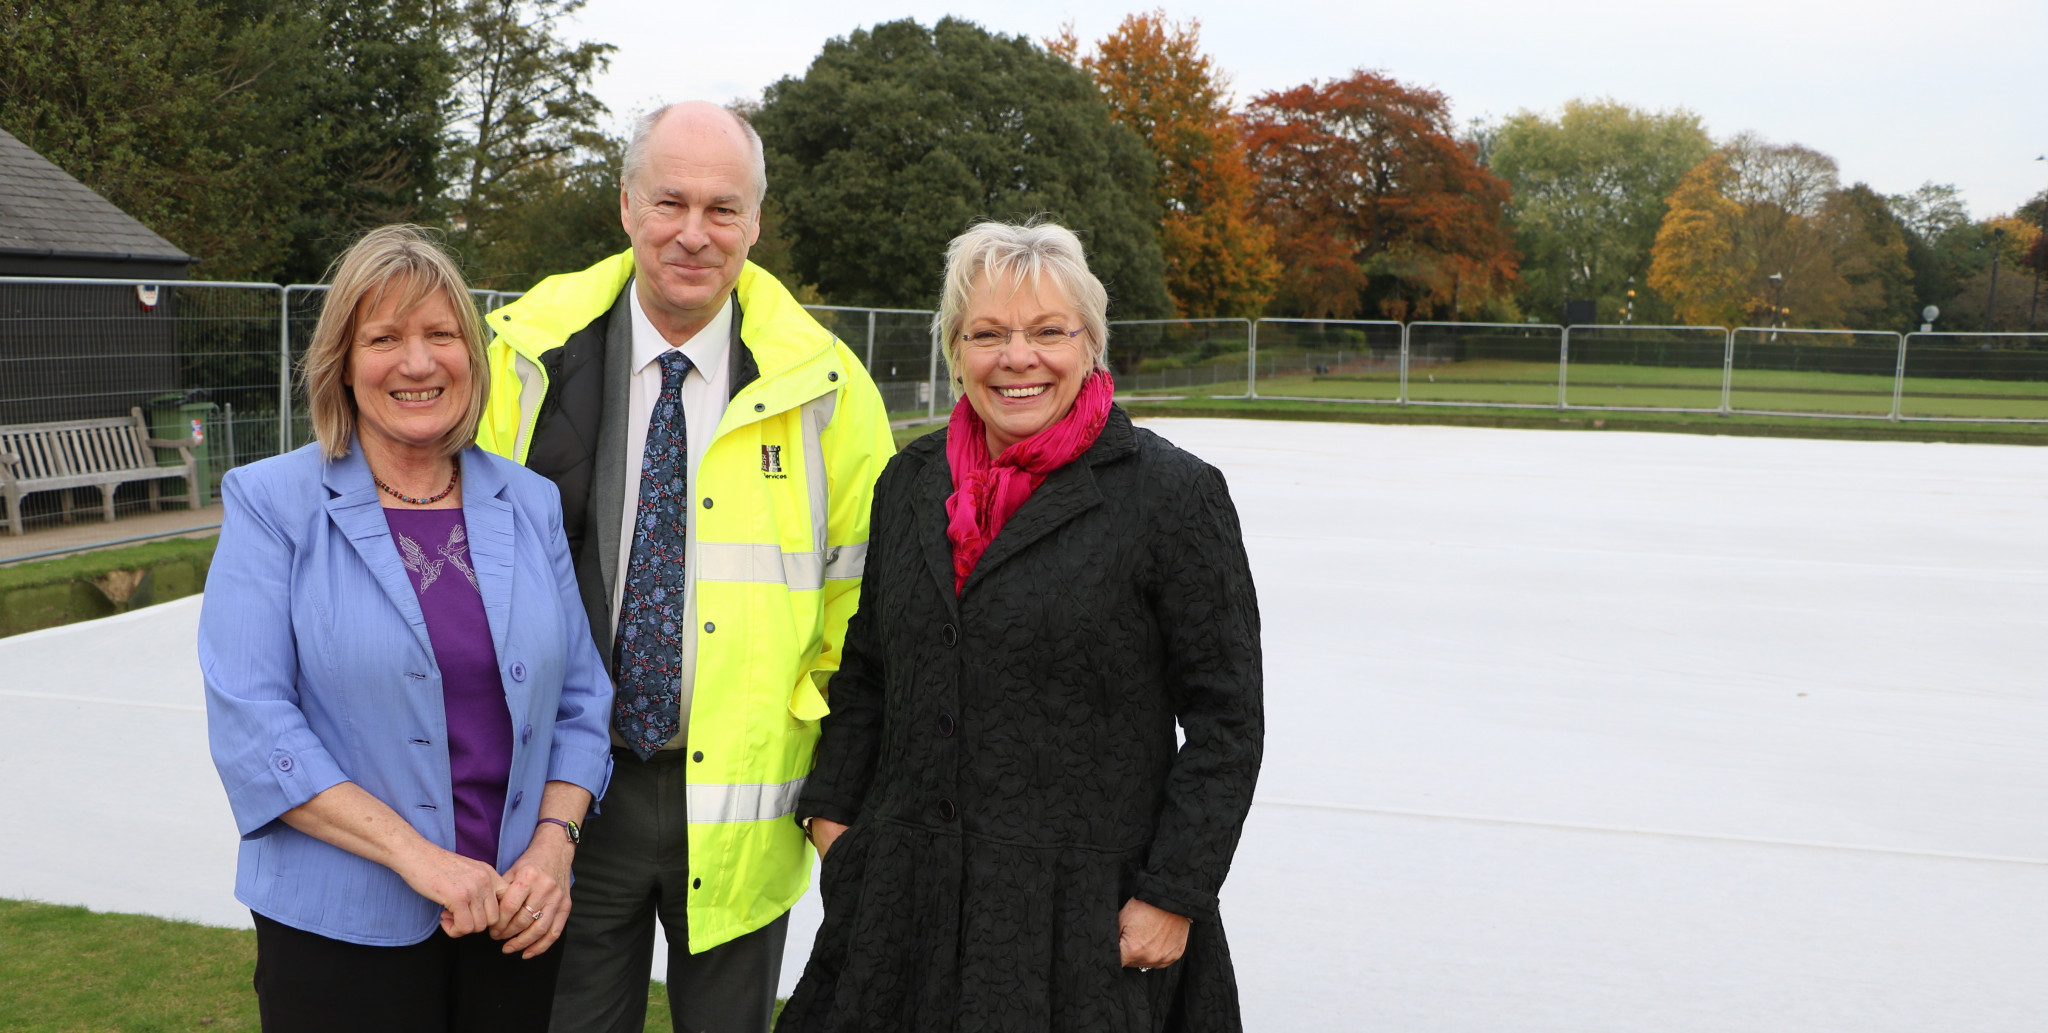 Warwick District Council's Portfolio Holder for Culture, Councillor Moira-Ann Grainger, right, and Commonwealth Games gold medallist Christina Boxer, left, inspected the first stage of work at the Victoria Park Bowling Greens ©Warwick District Council